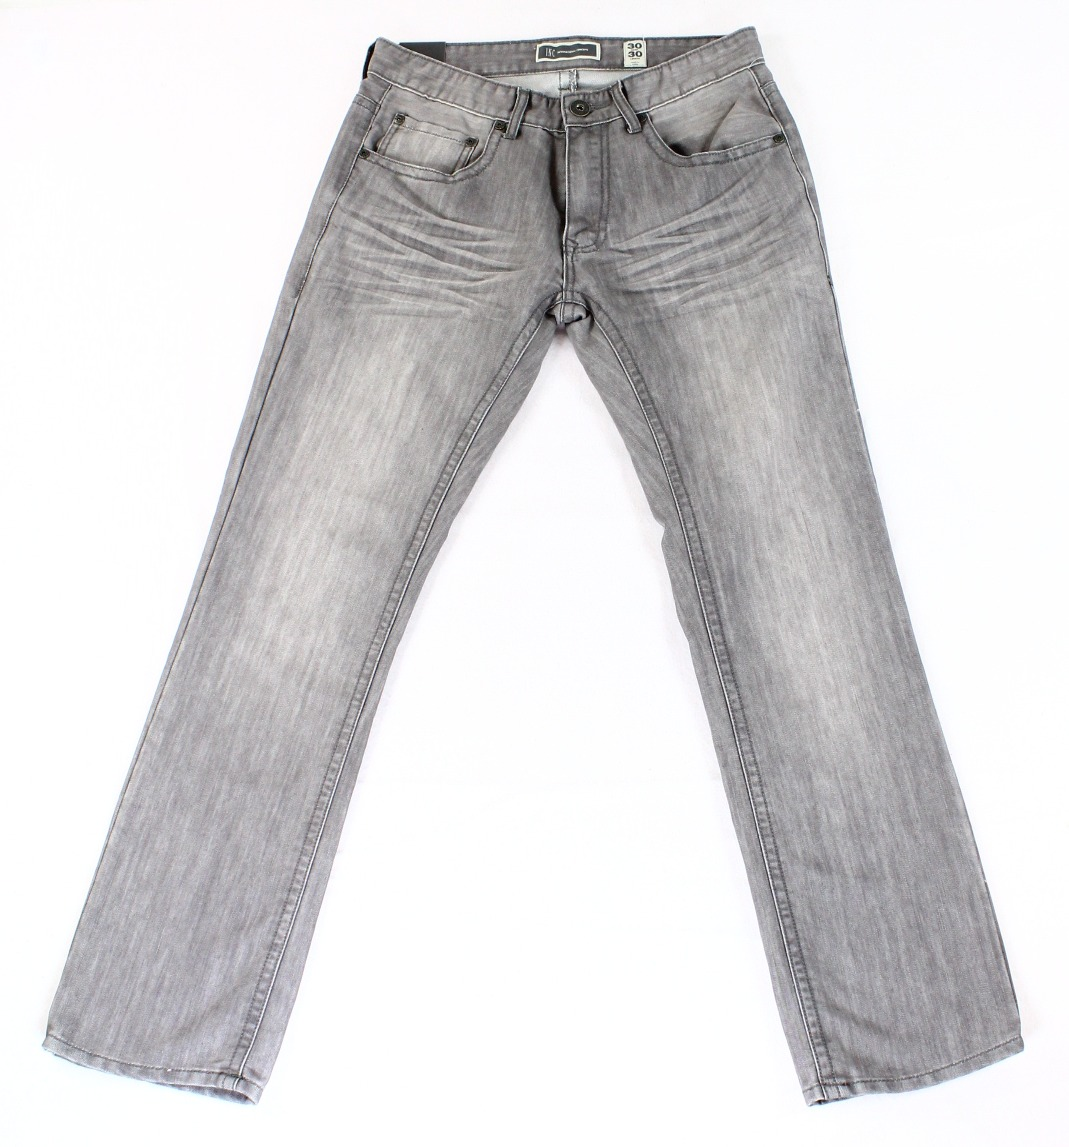 INC NEW Gray Mens Size 32X32 Berlin Slim Straight Leg Five-Pocket Jeans $49